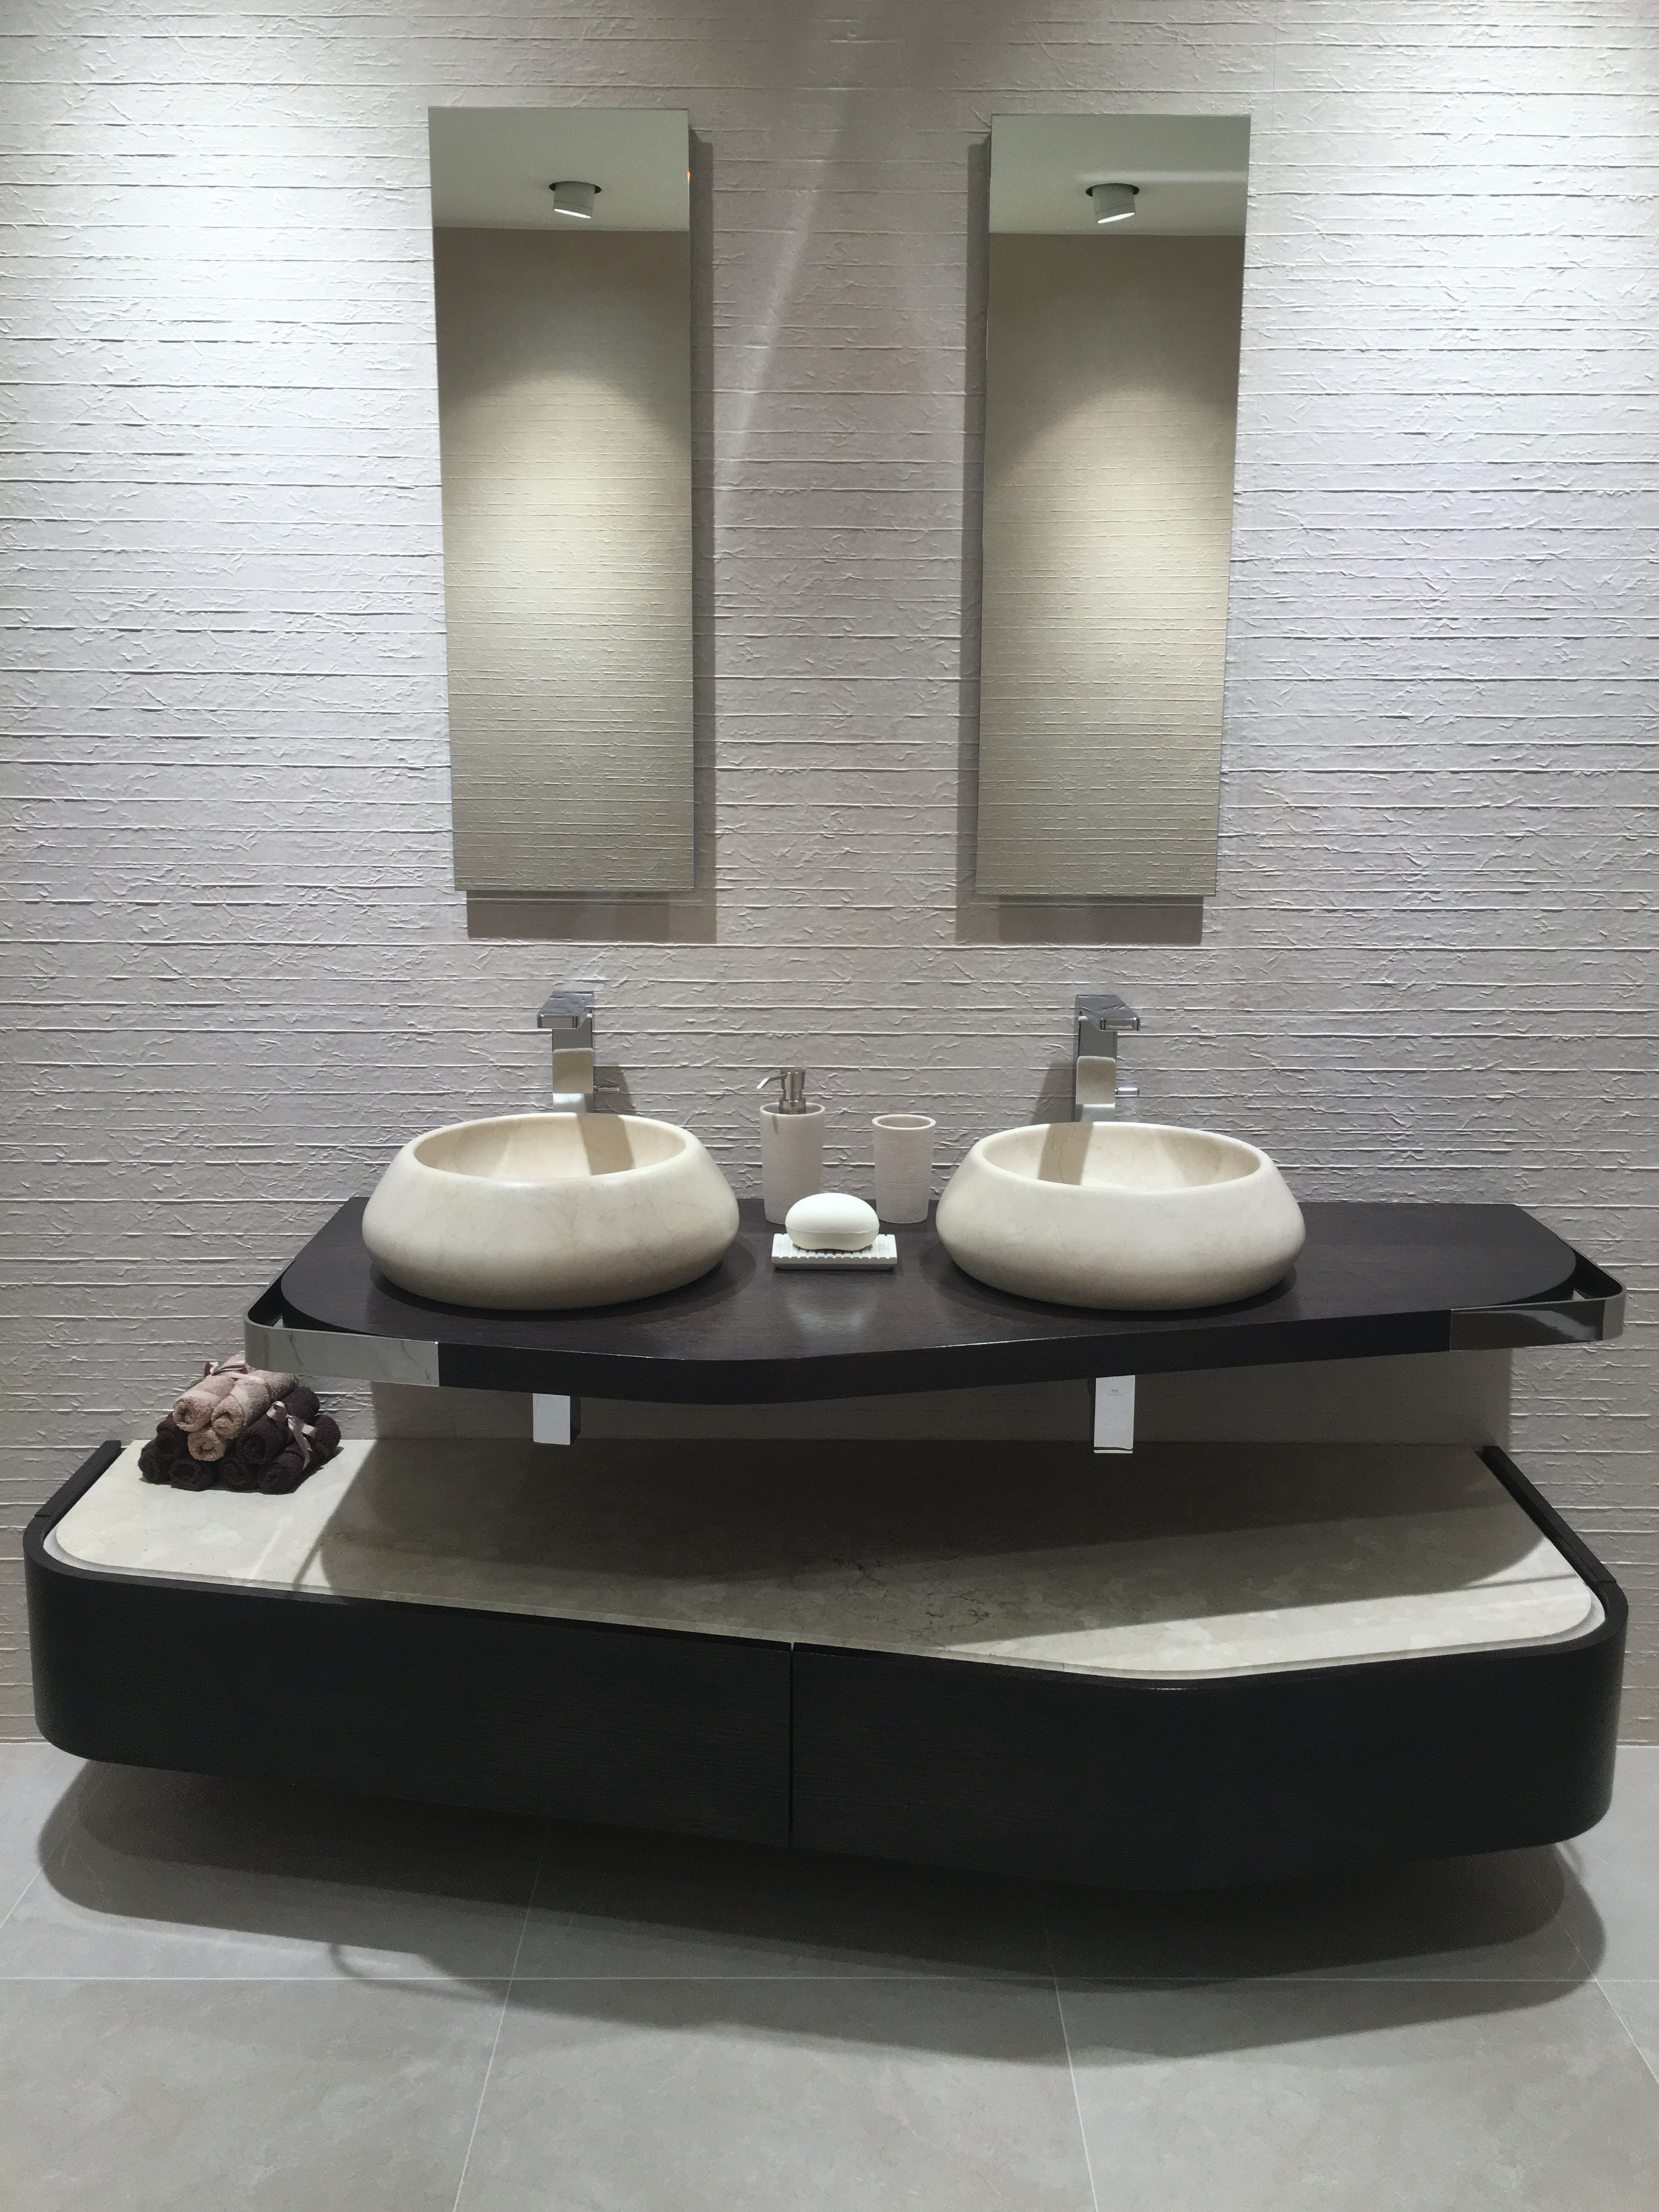 Couple's sinks with asymmetric detail and beautifully shaped bowls